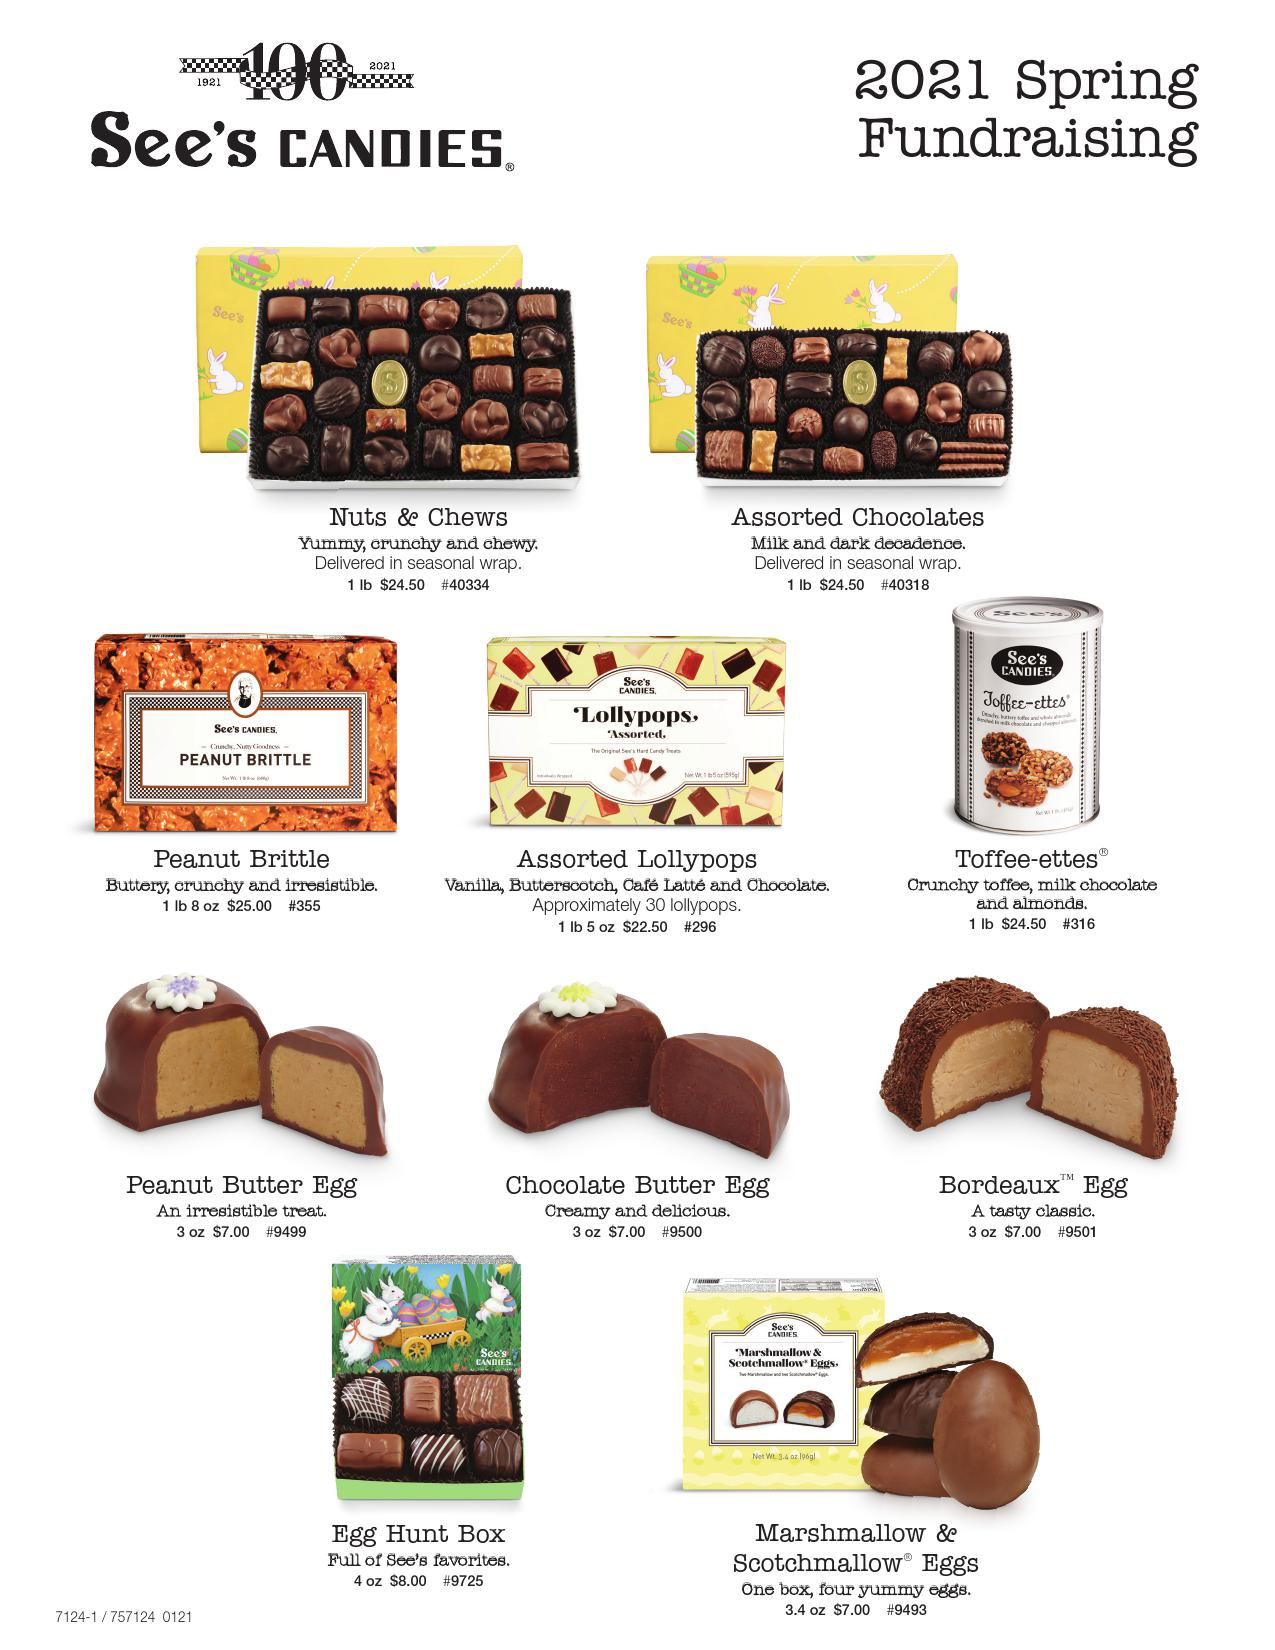 See's Candies Spring/Easter TACH 2021 Fundraiser!